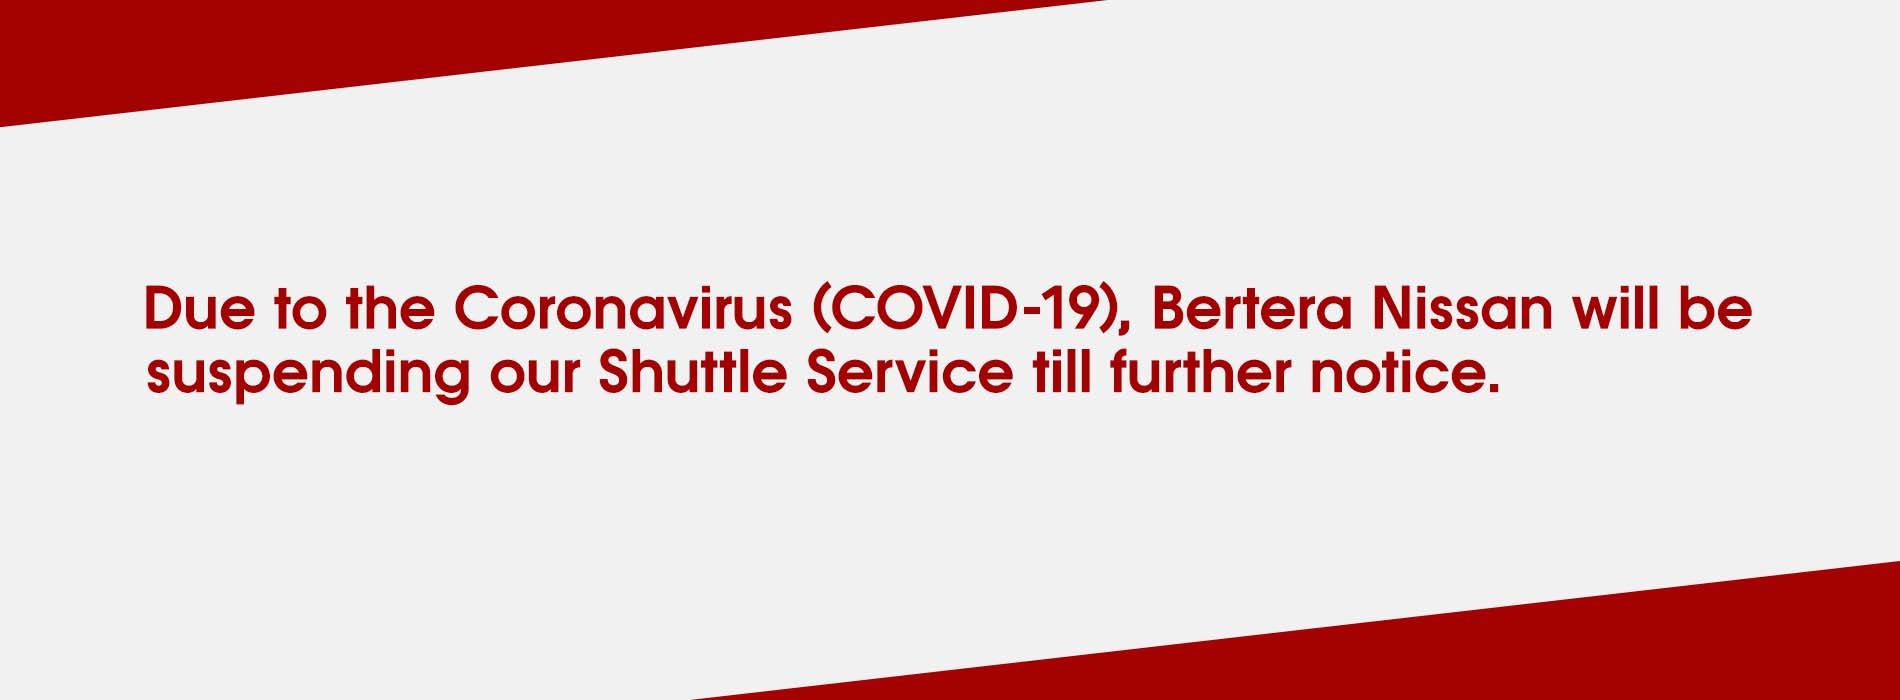 Shuttle Suspended (COVID-19)